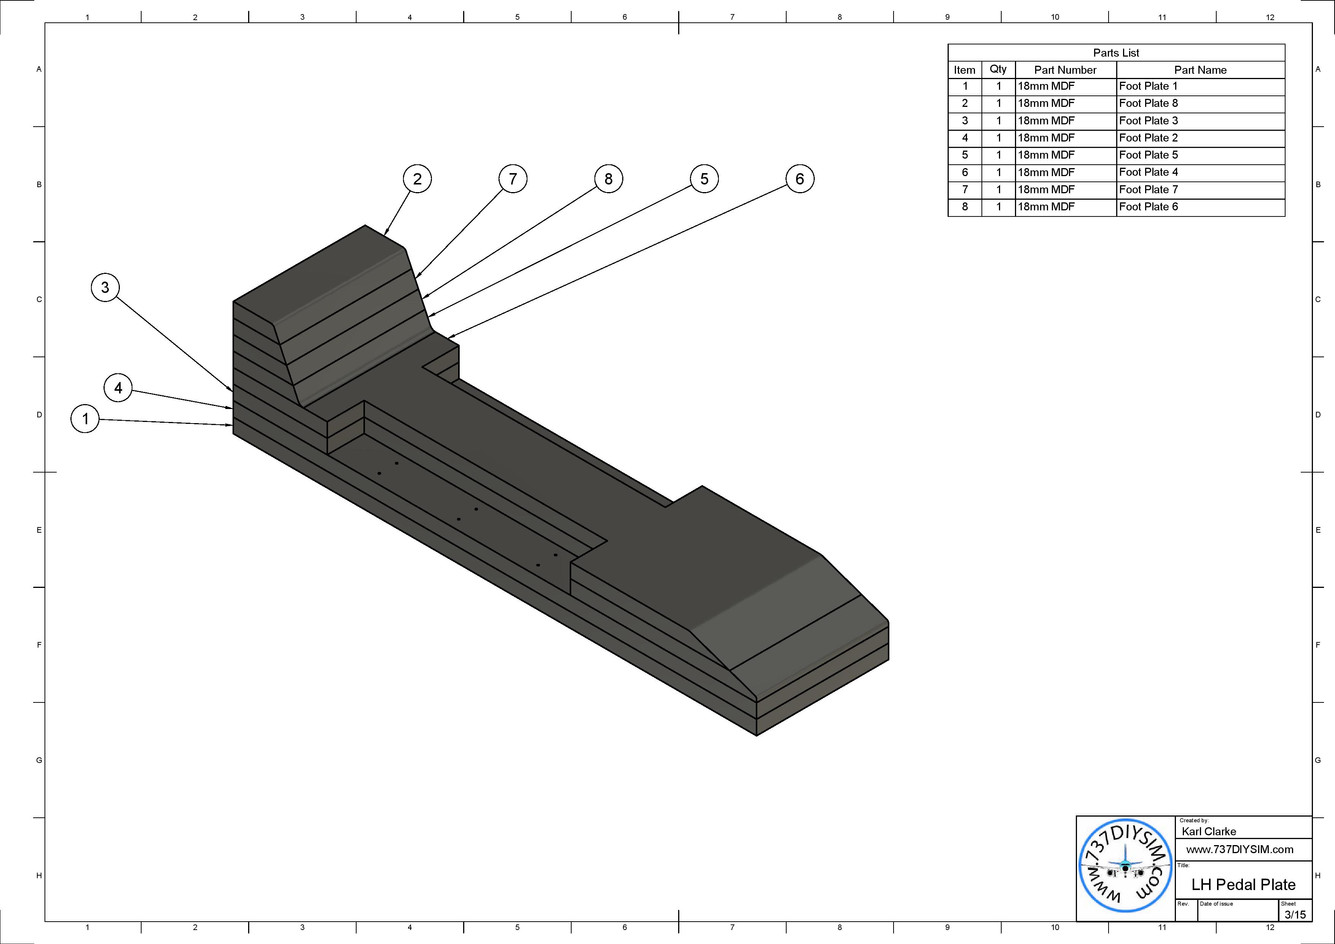 LH Pedal Plate Drawing v1-page-003.jpg